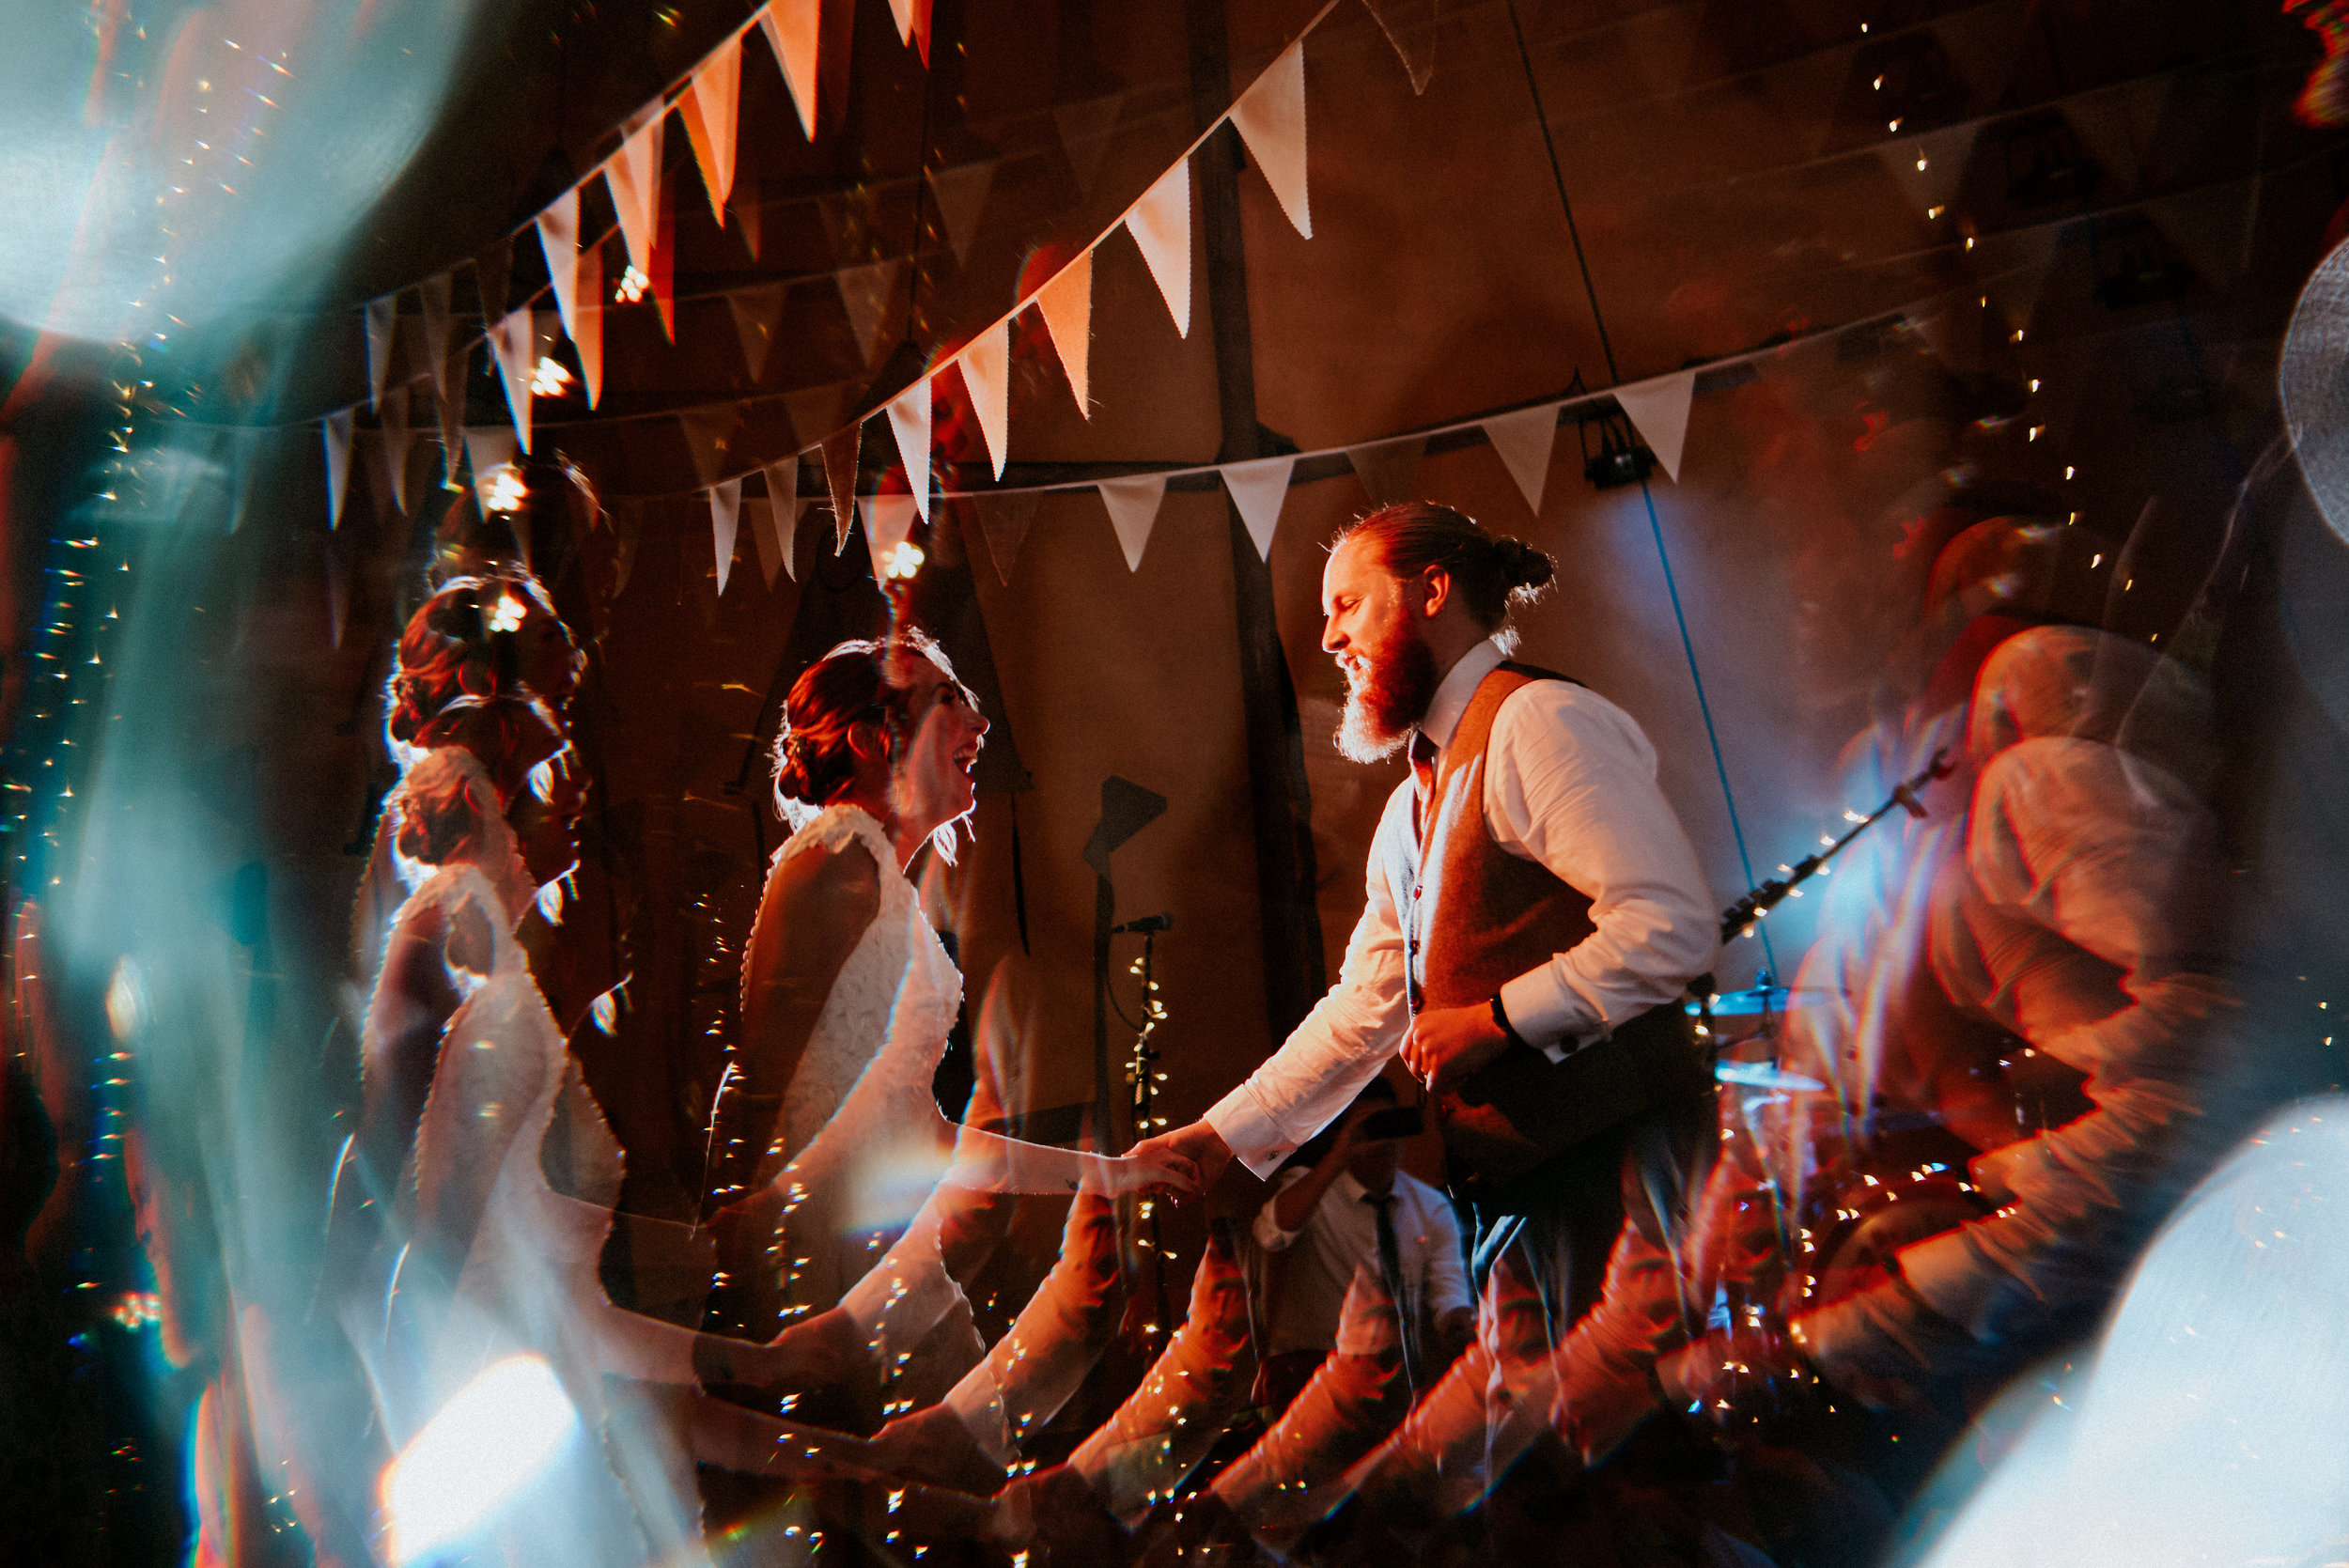 Wild Baildon moor portraits, A fairy lit teepee filled with bespoke details, A rock n roll bride & groom take the stage together to perform. It's a day to remember in this Baildon Rugby Club Wedding